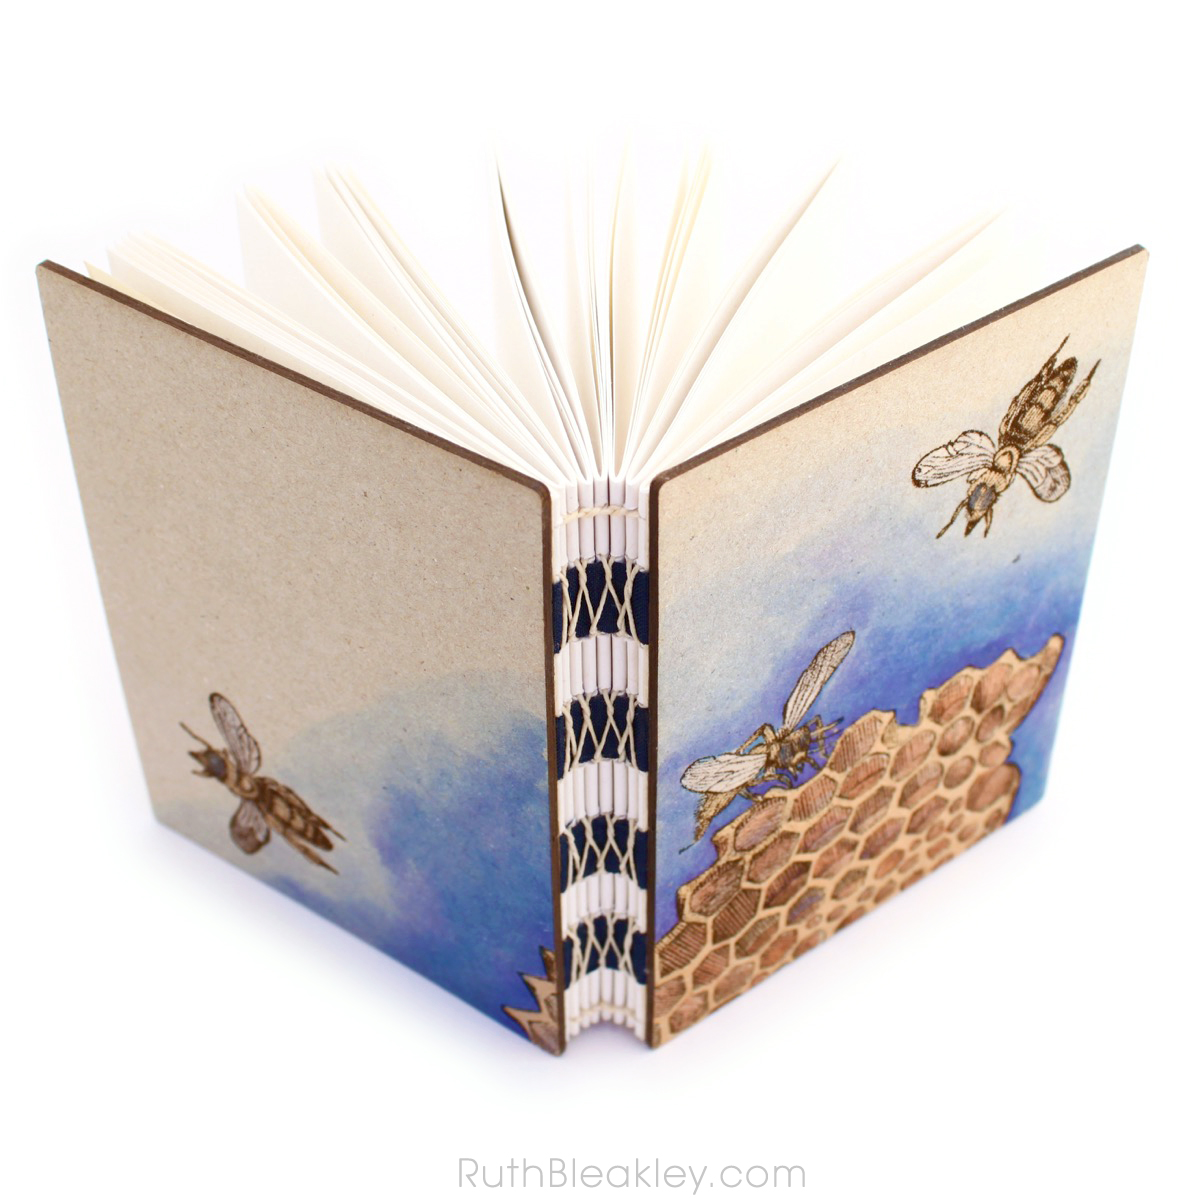 Hand Painted Honeybee Journal with engraved covers handmade by book artist Ruth Bleakley - 2